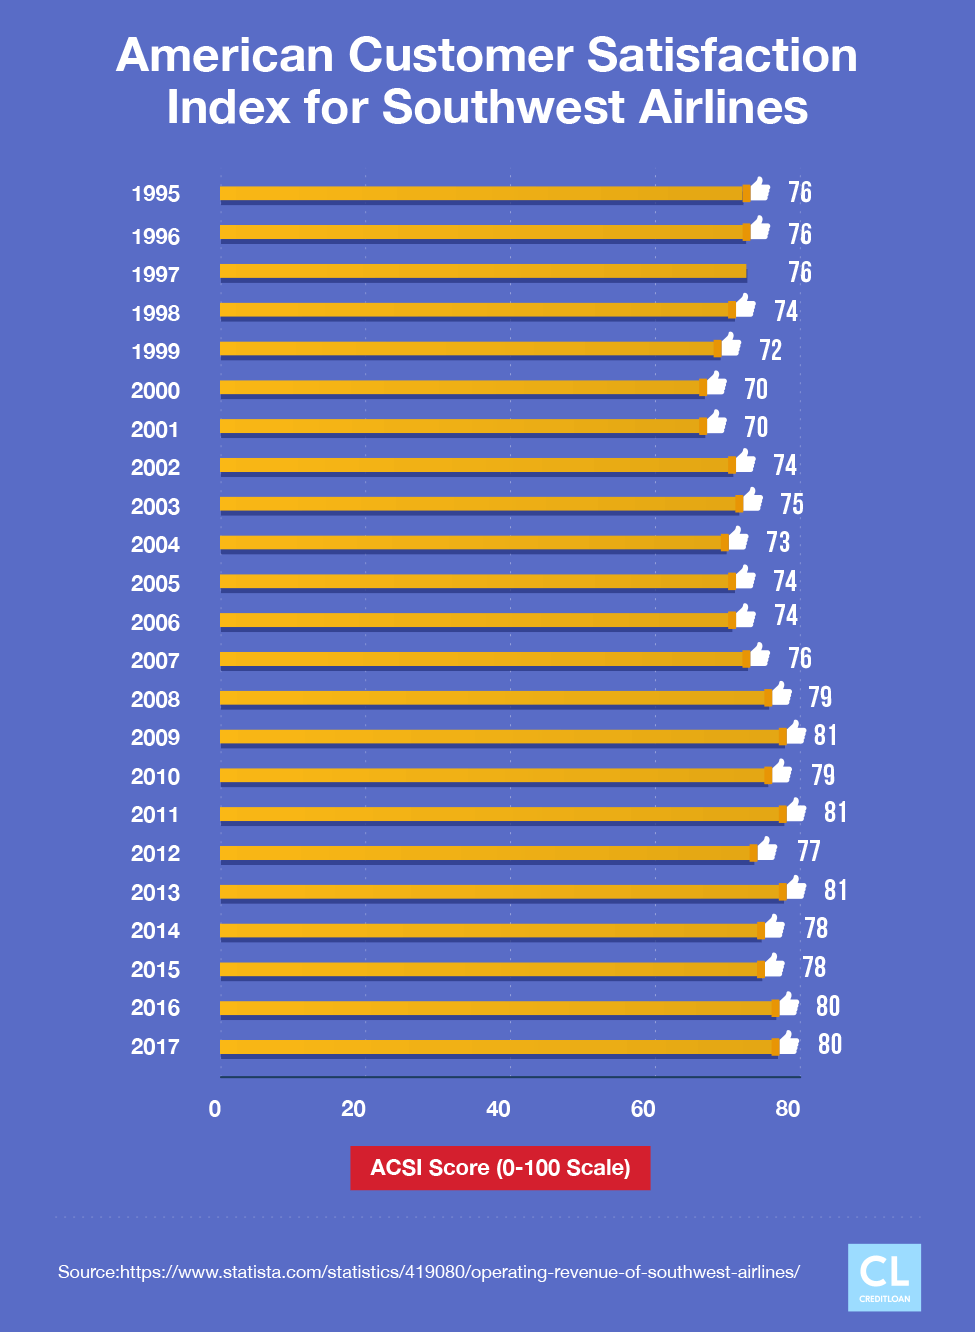 American Customer Satisfaction Index for Southwest Airlines from 1995-2017